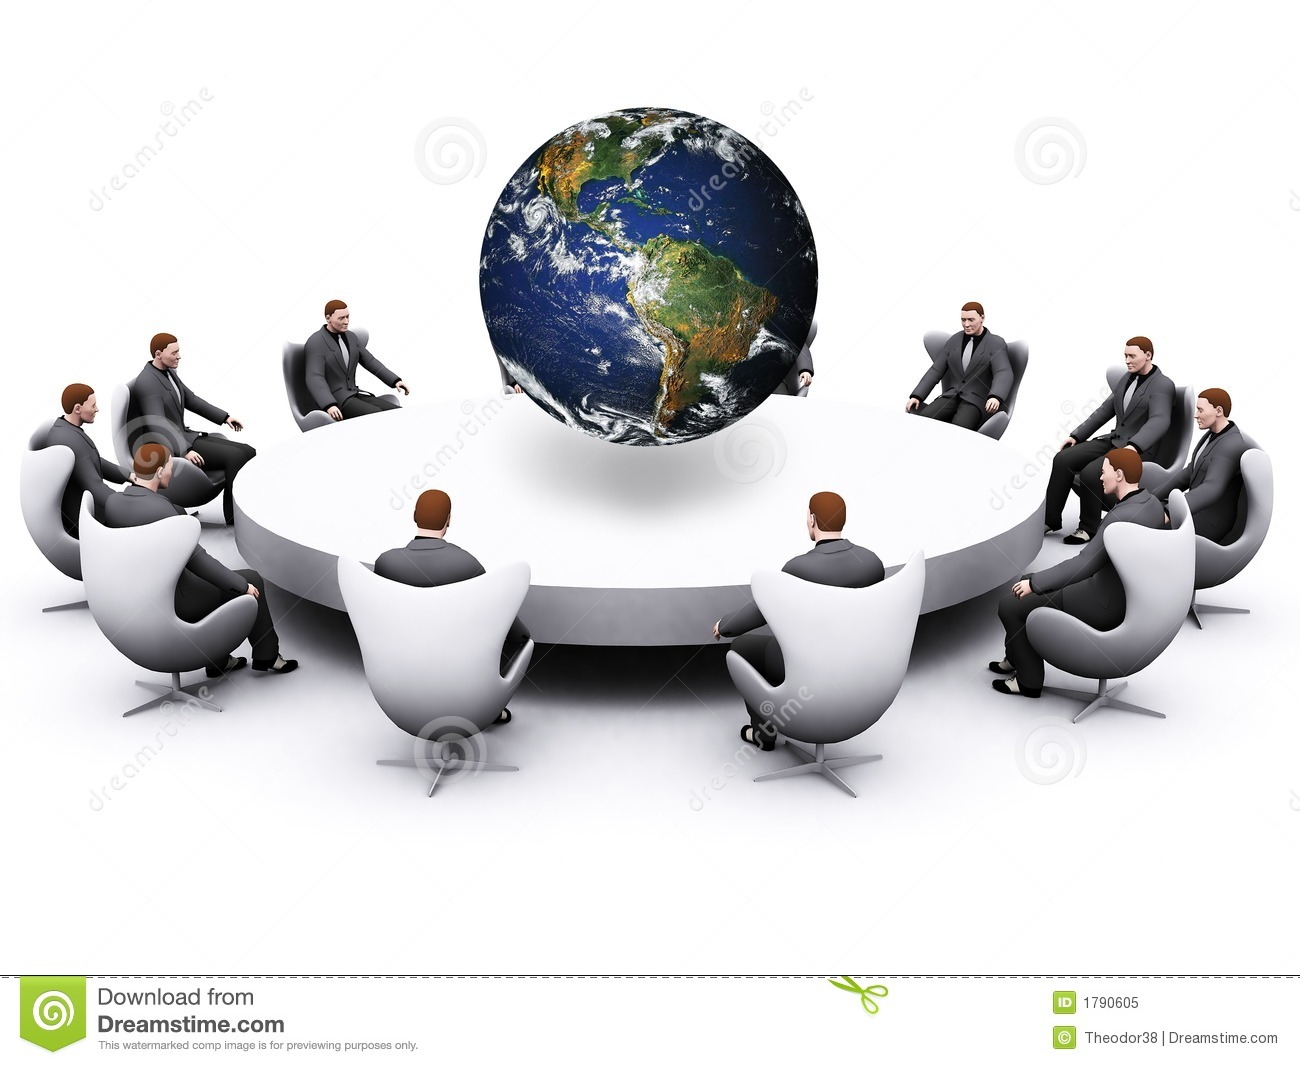 sell office chairs power lift recliner businessman sitting around table stock illustration - image: 1790605